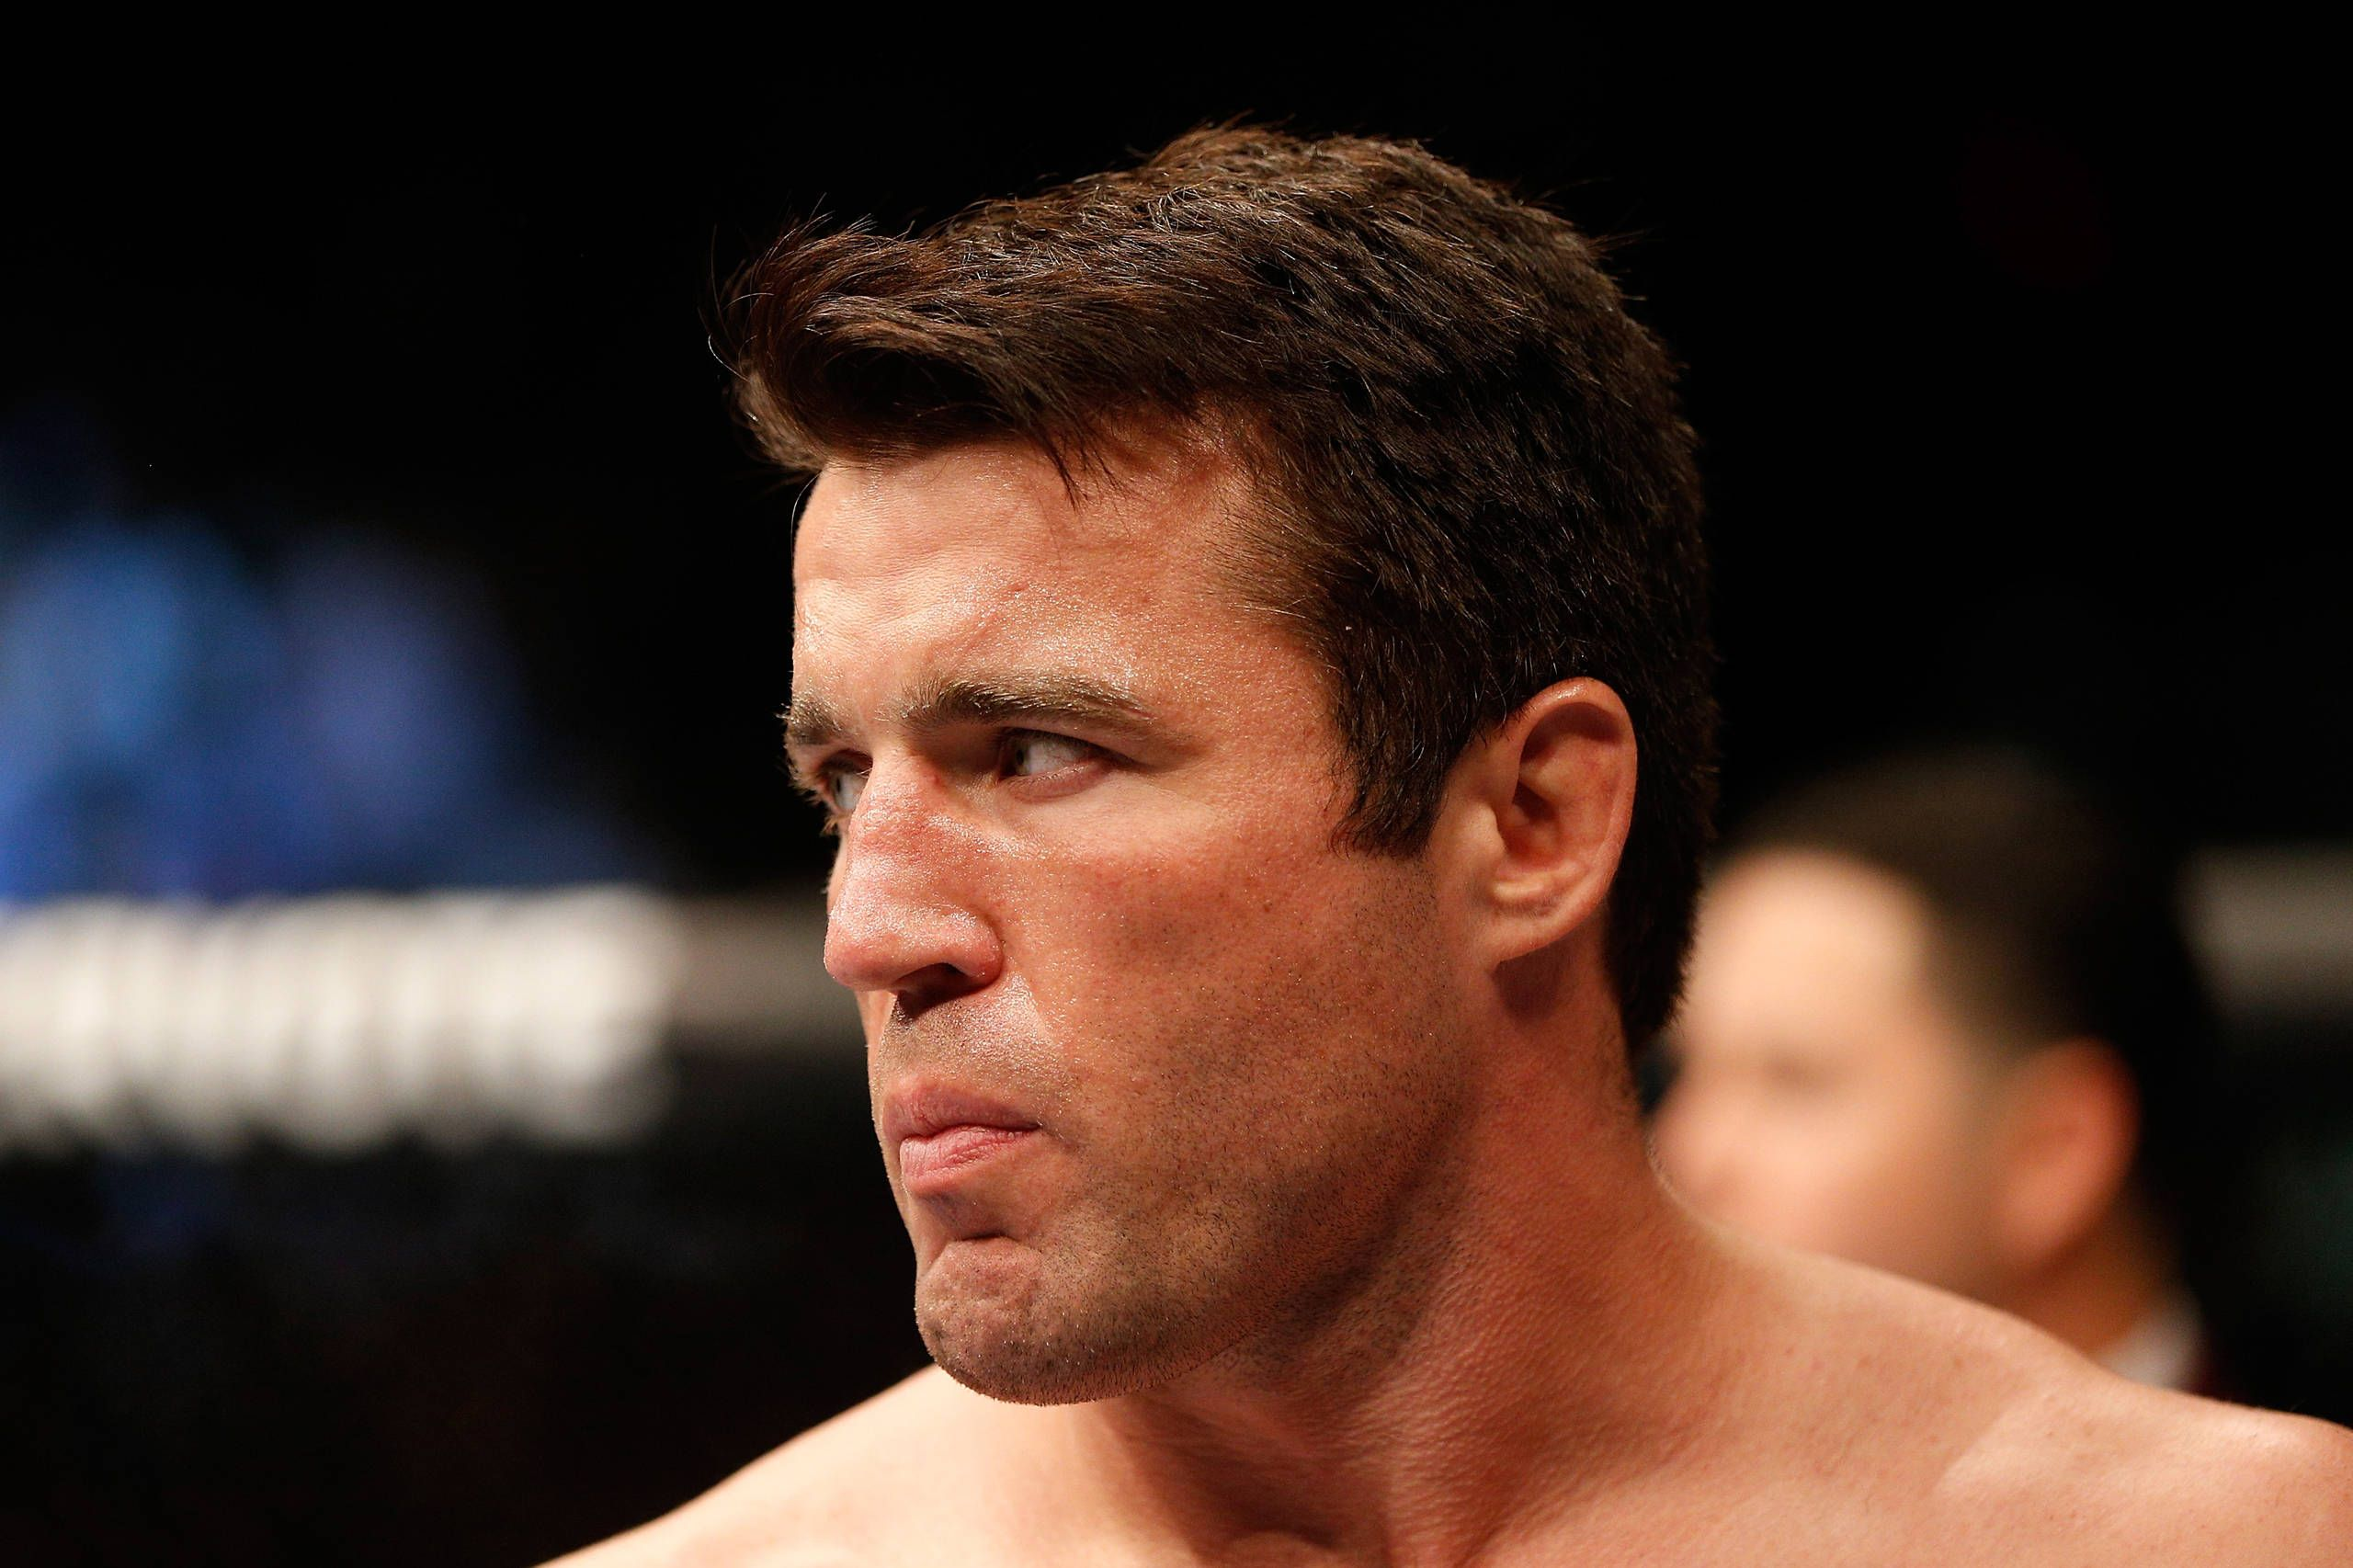 Chael Sonnen fails drug test, pulled from fight at UFC 175